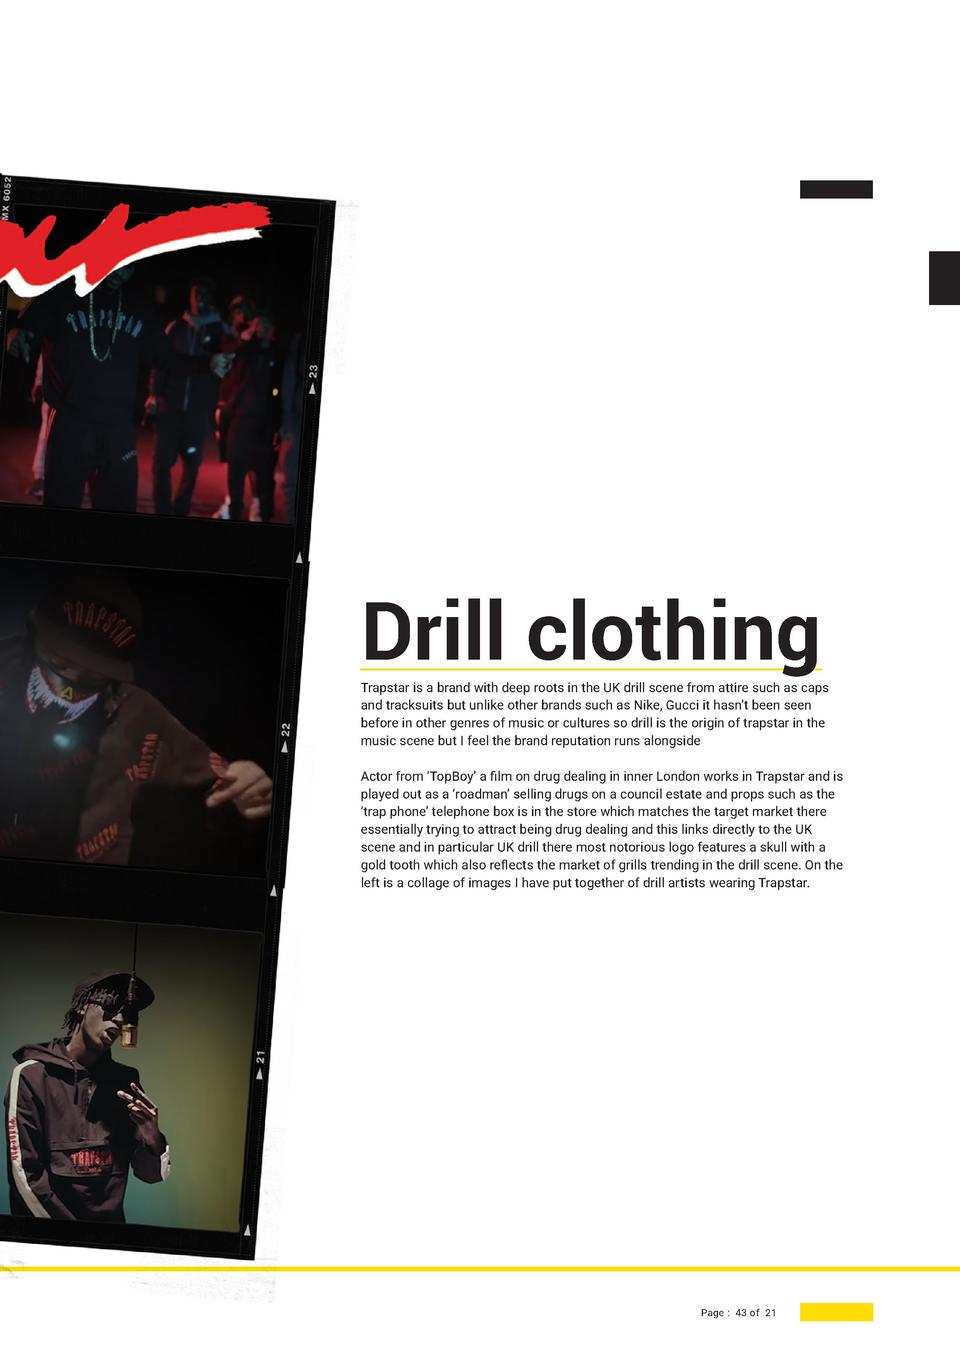 945294d17 Drill clothing Trapstar is a brand with deep roots in the UK drill scene  from attire